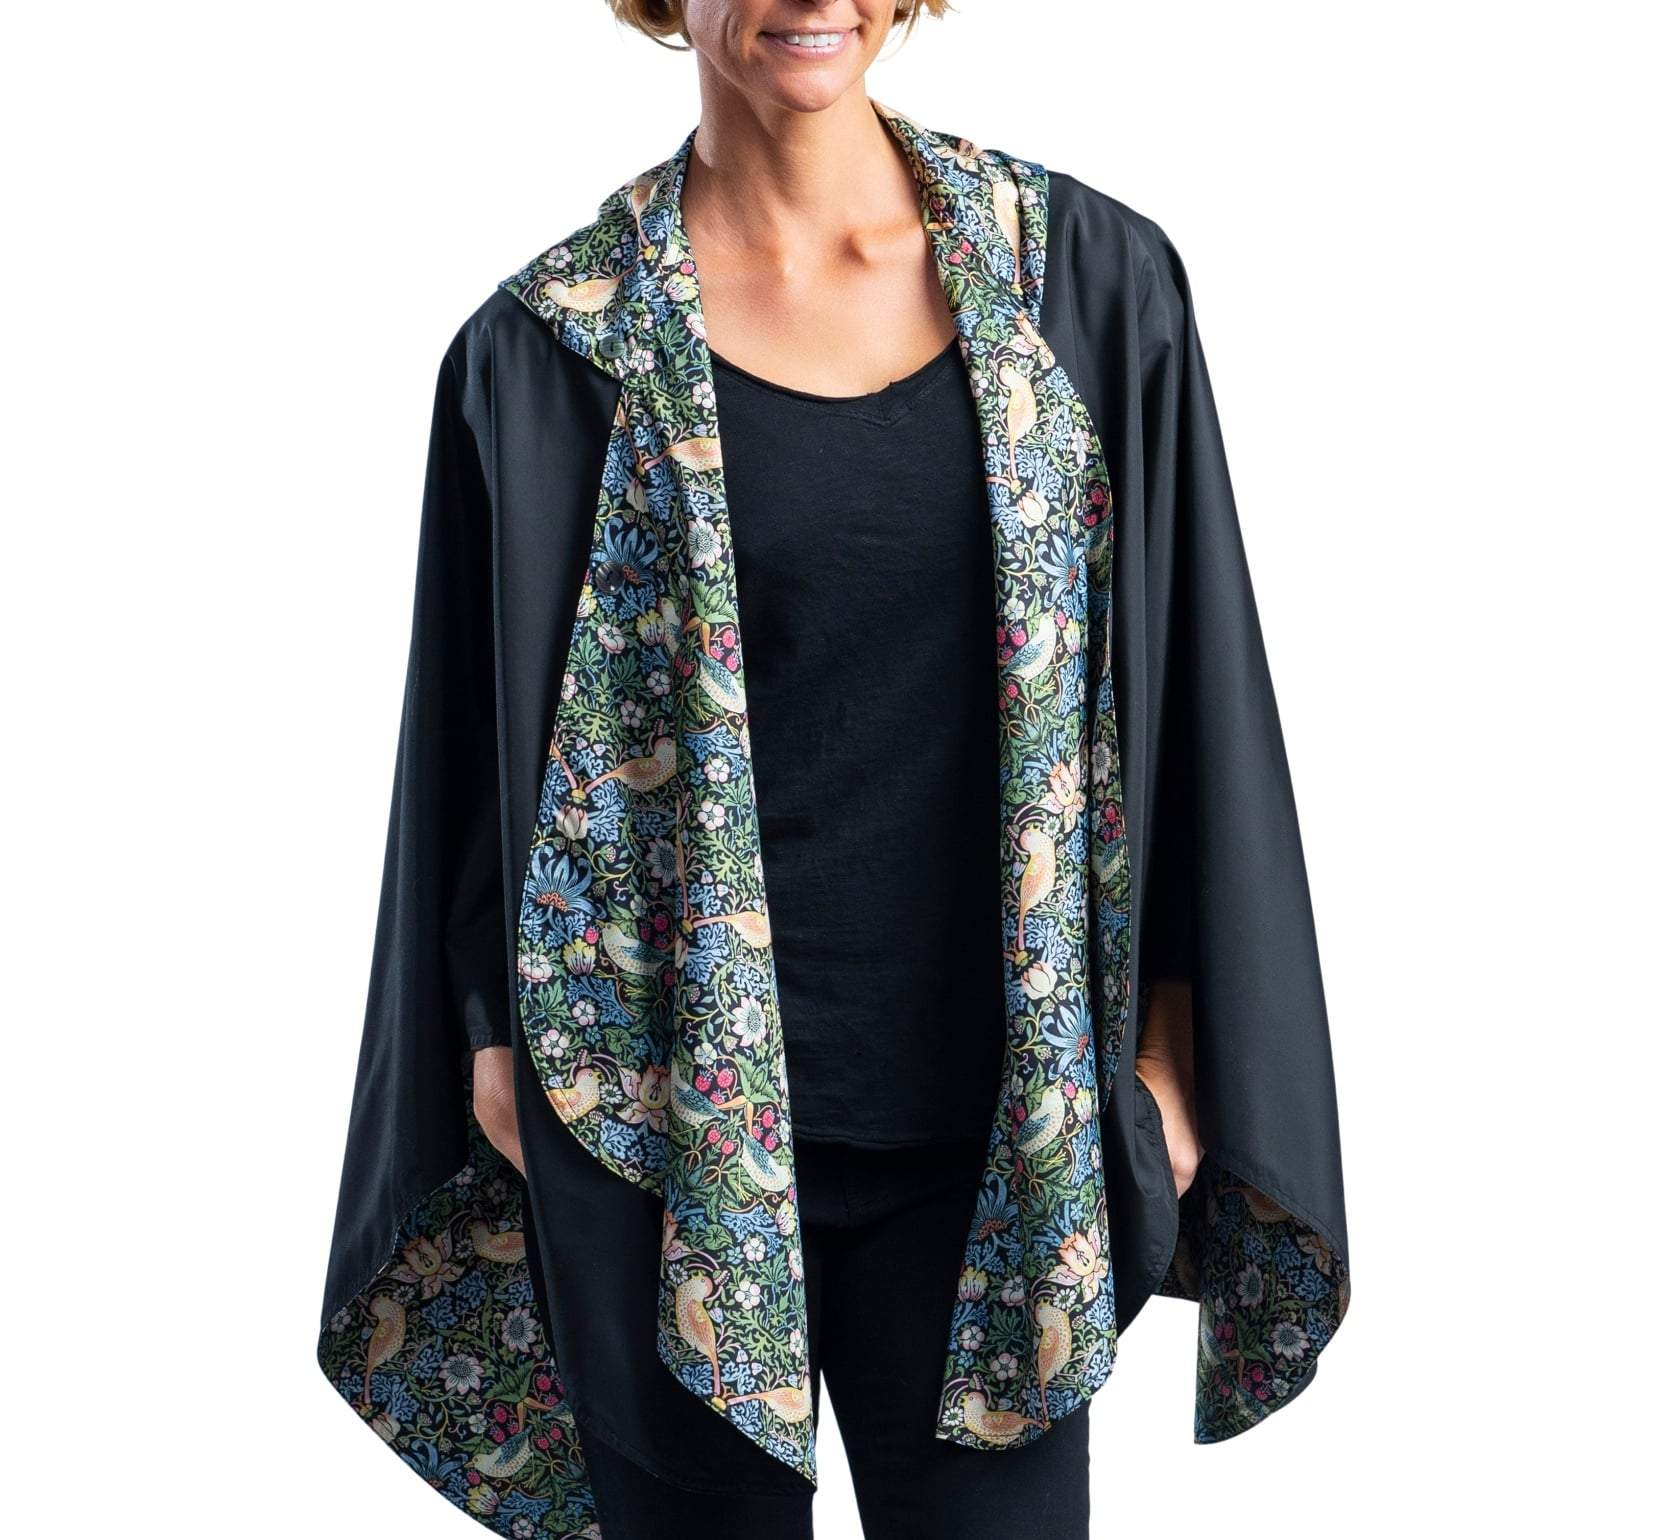 RAINCAPER BLACK/WILLIAM MORRIS STRAWBERRY THIEF TRAVEL CAPE